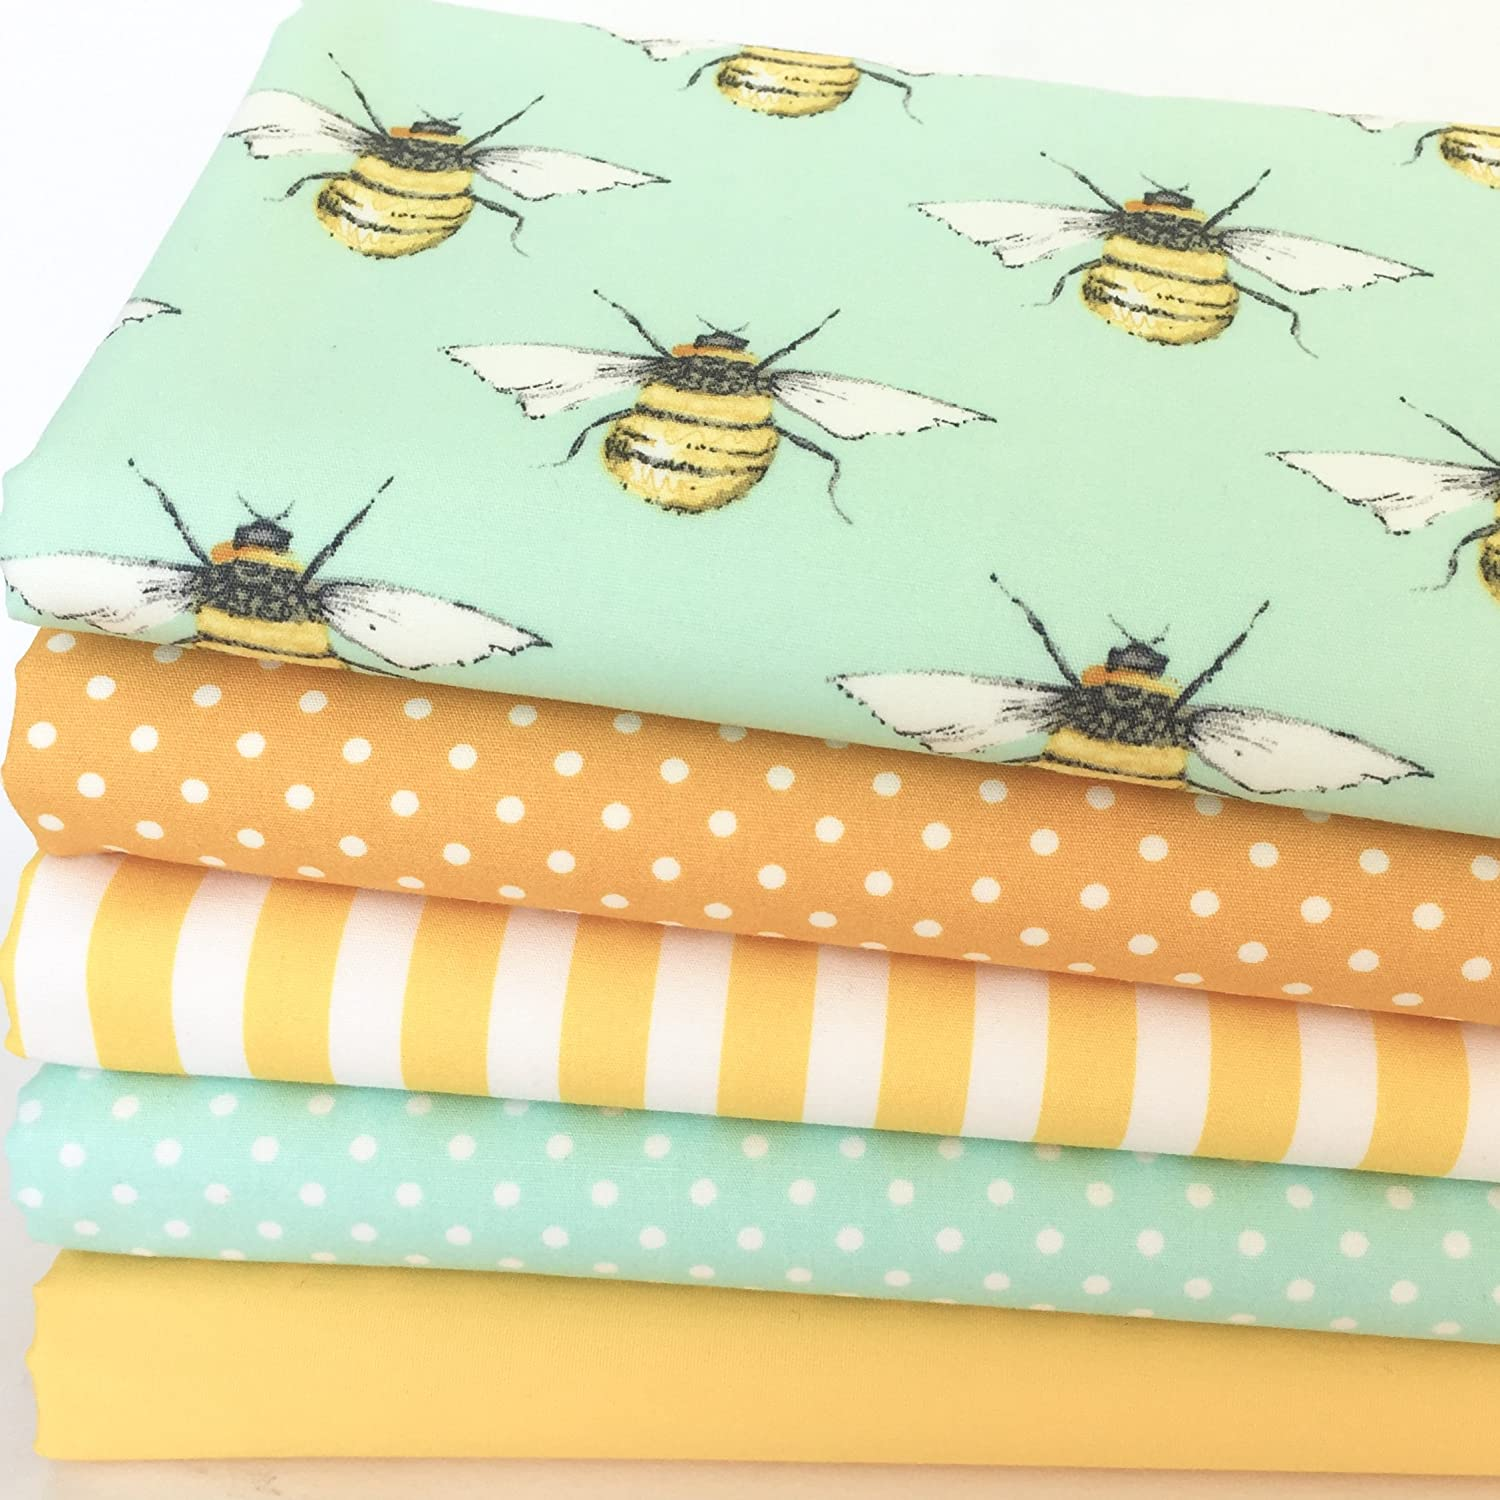 Always Knitting and Sewing - 'Busy Bees' 5 piece, fat quarter bundle, 100% cotton fabric for sewing & patchwork